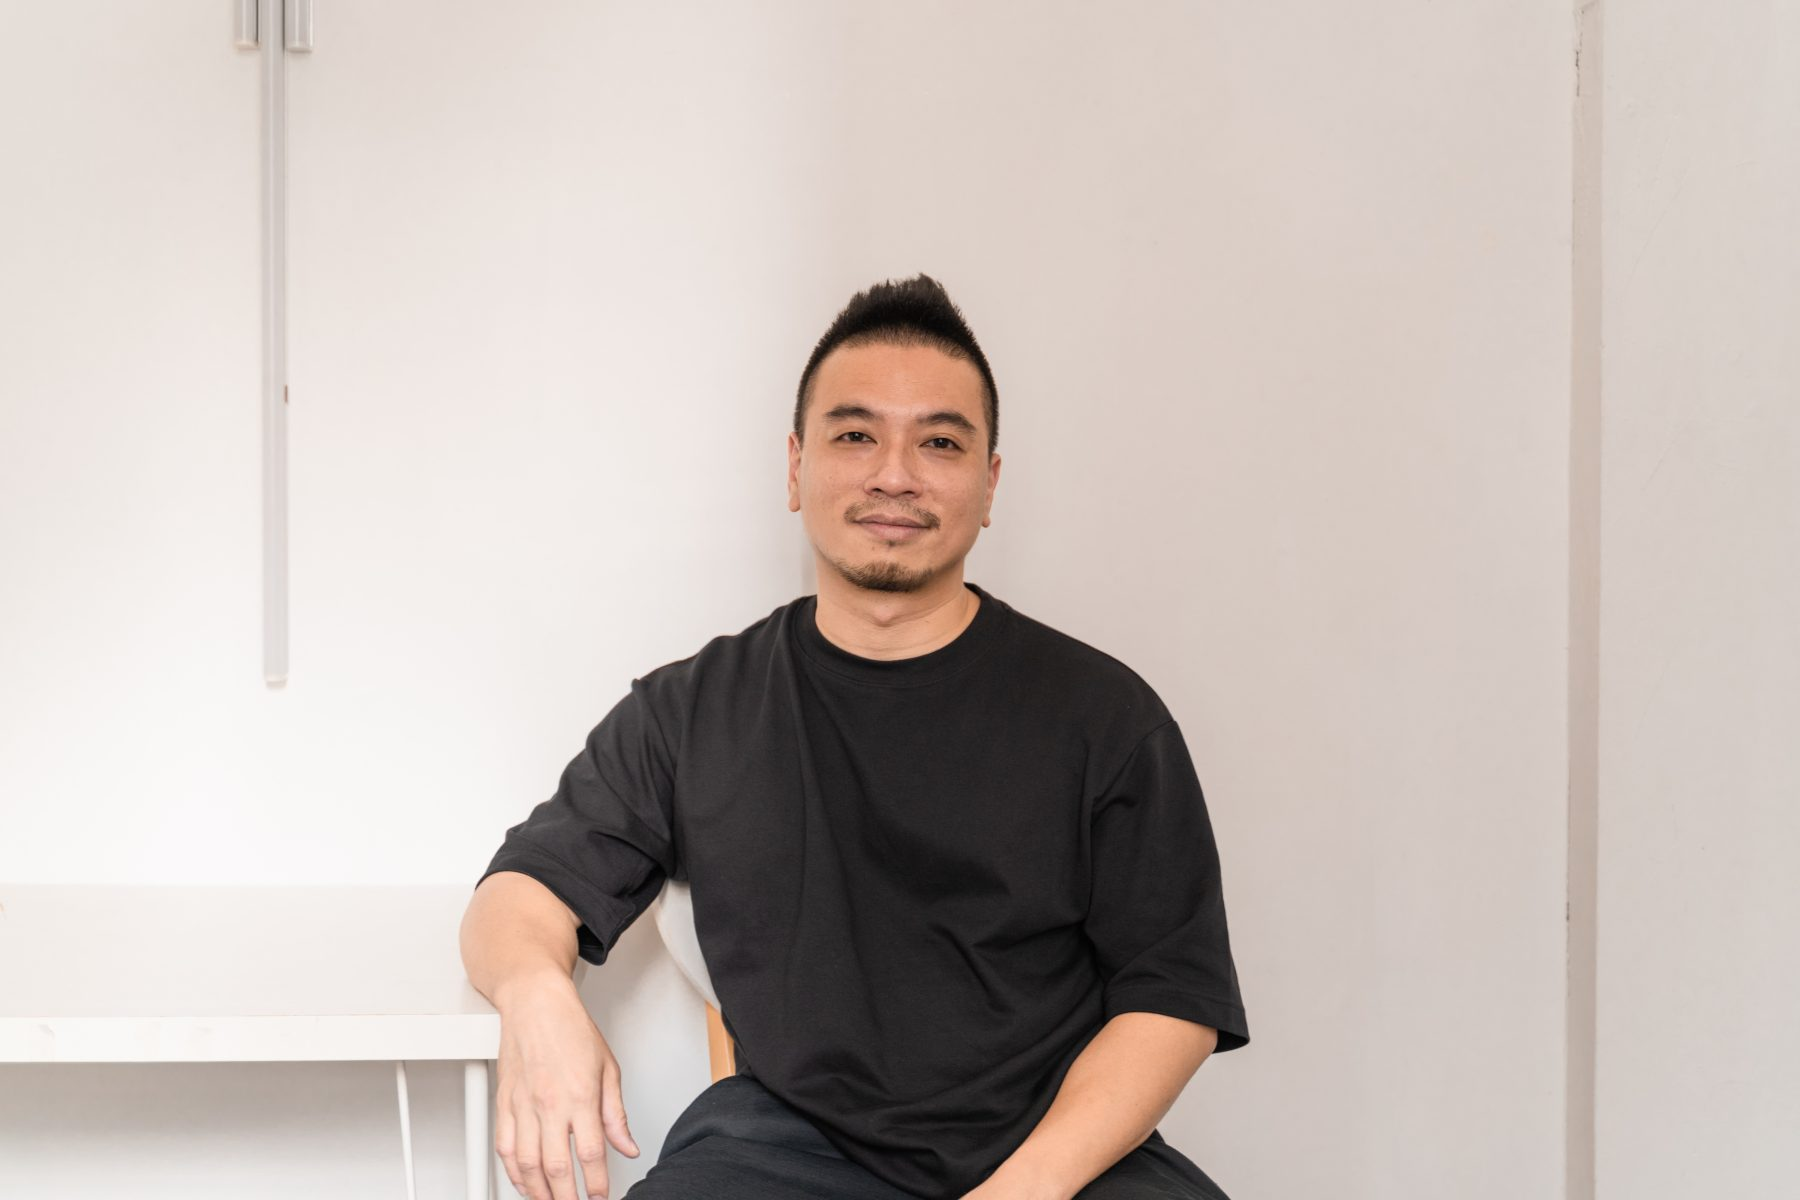 Quck Zhong Yi is the installation designer for The Bottled City.